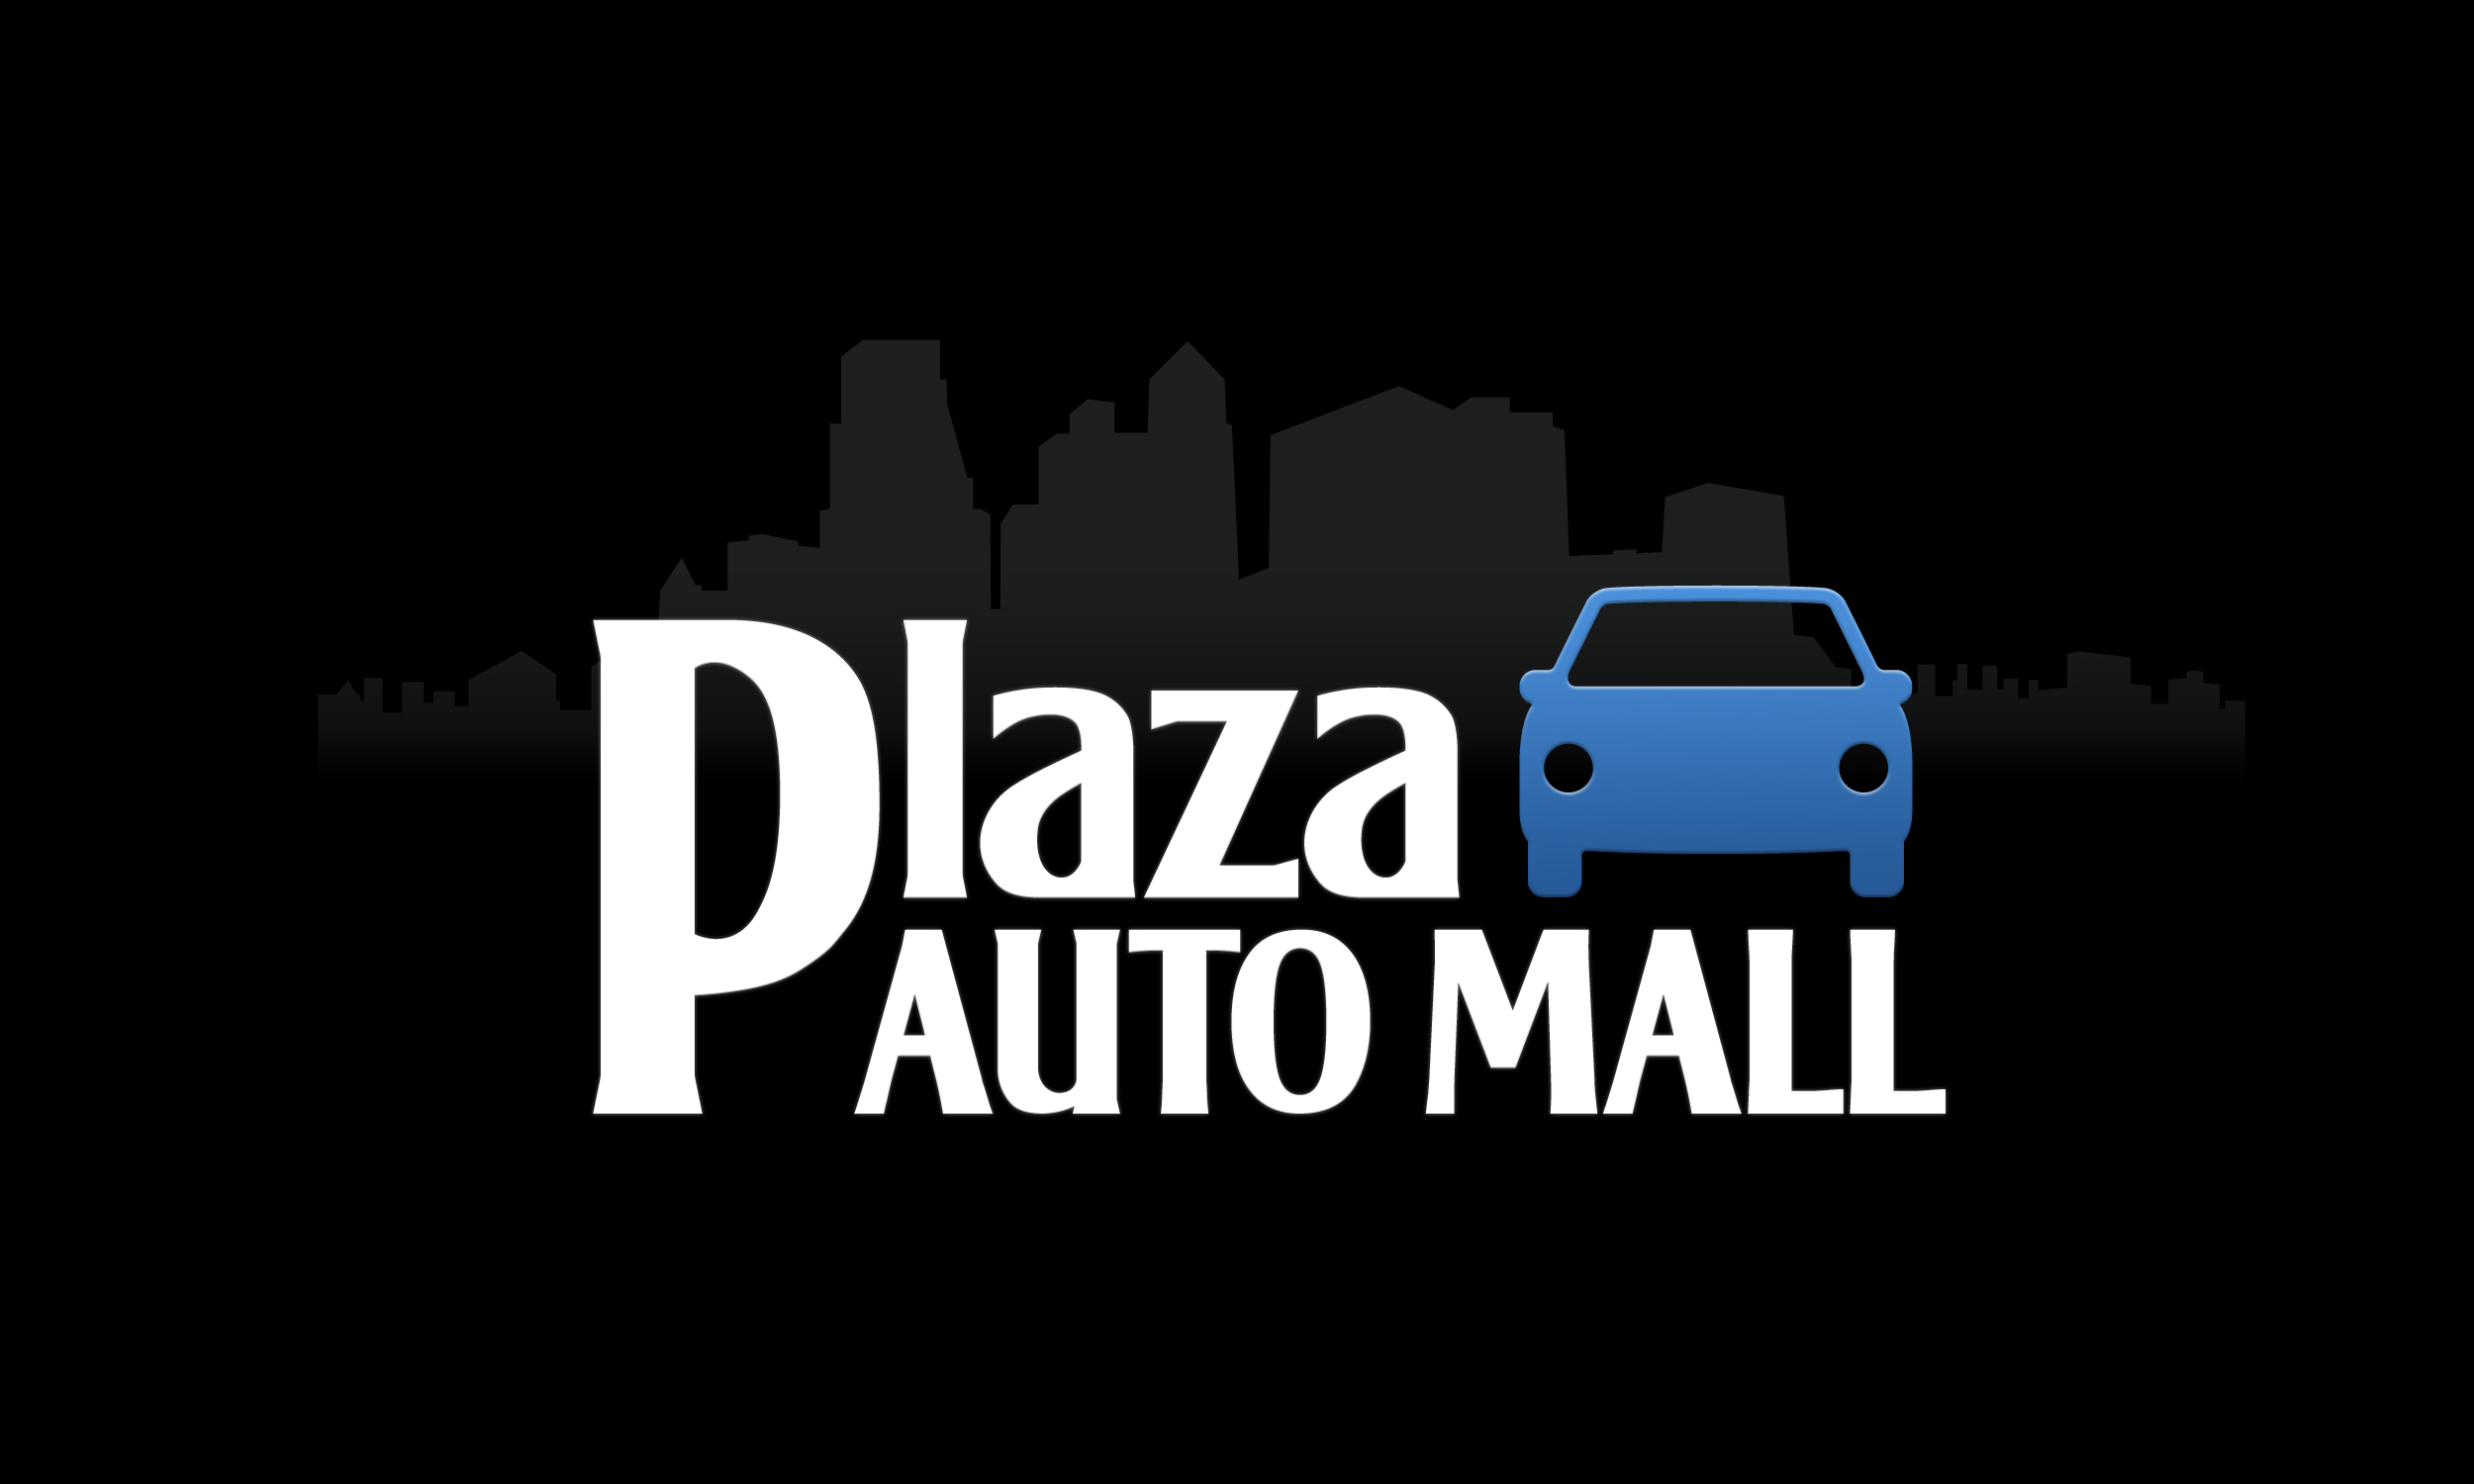 Plaza Auto Mall Logo